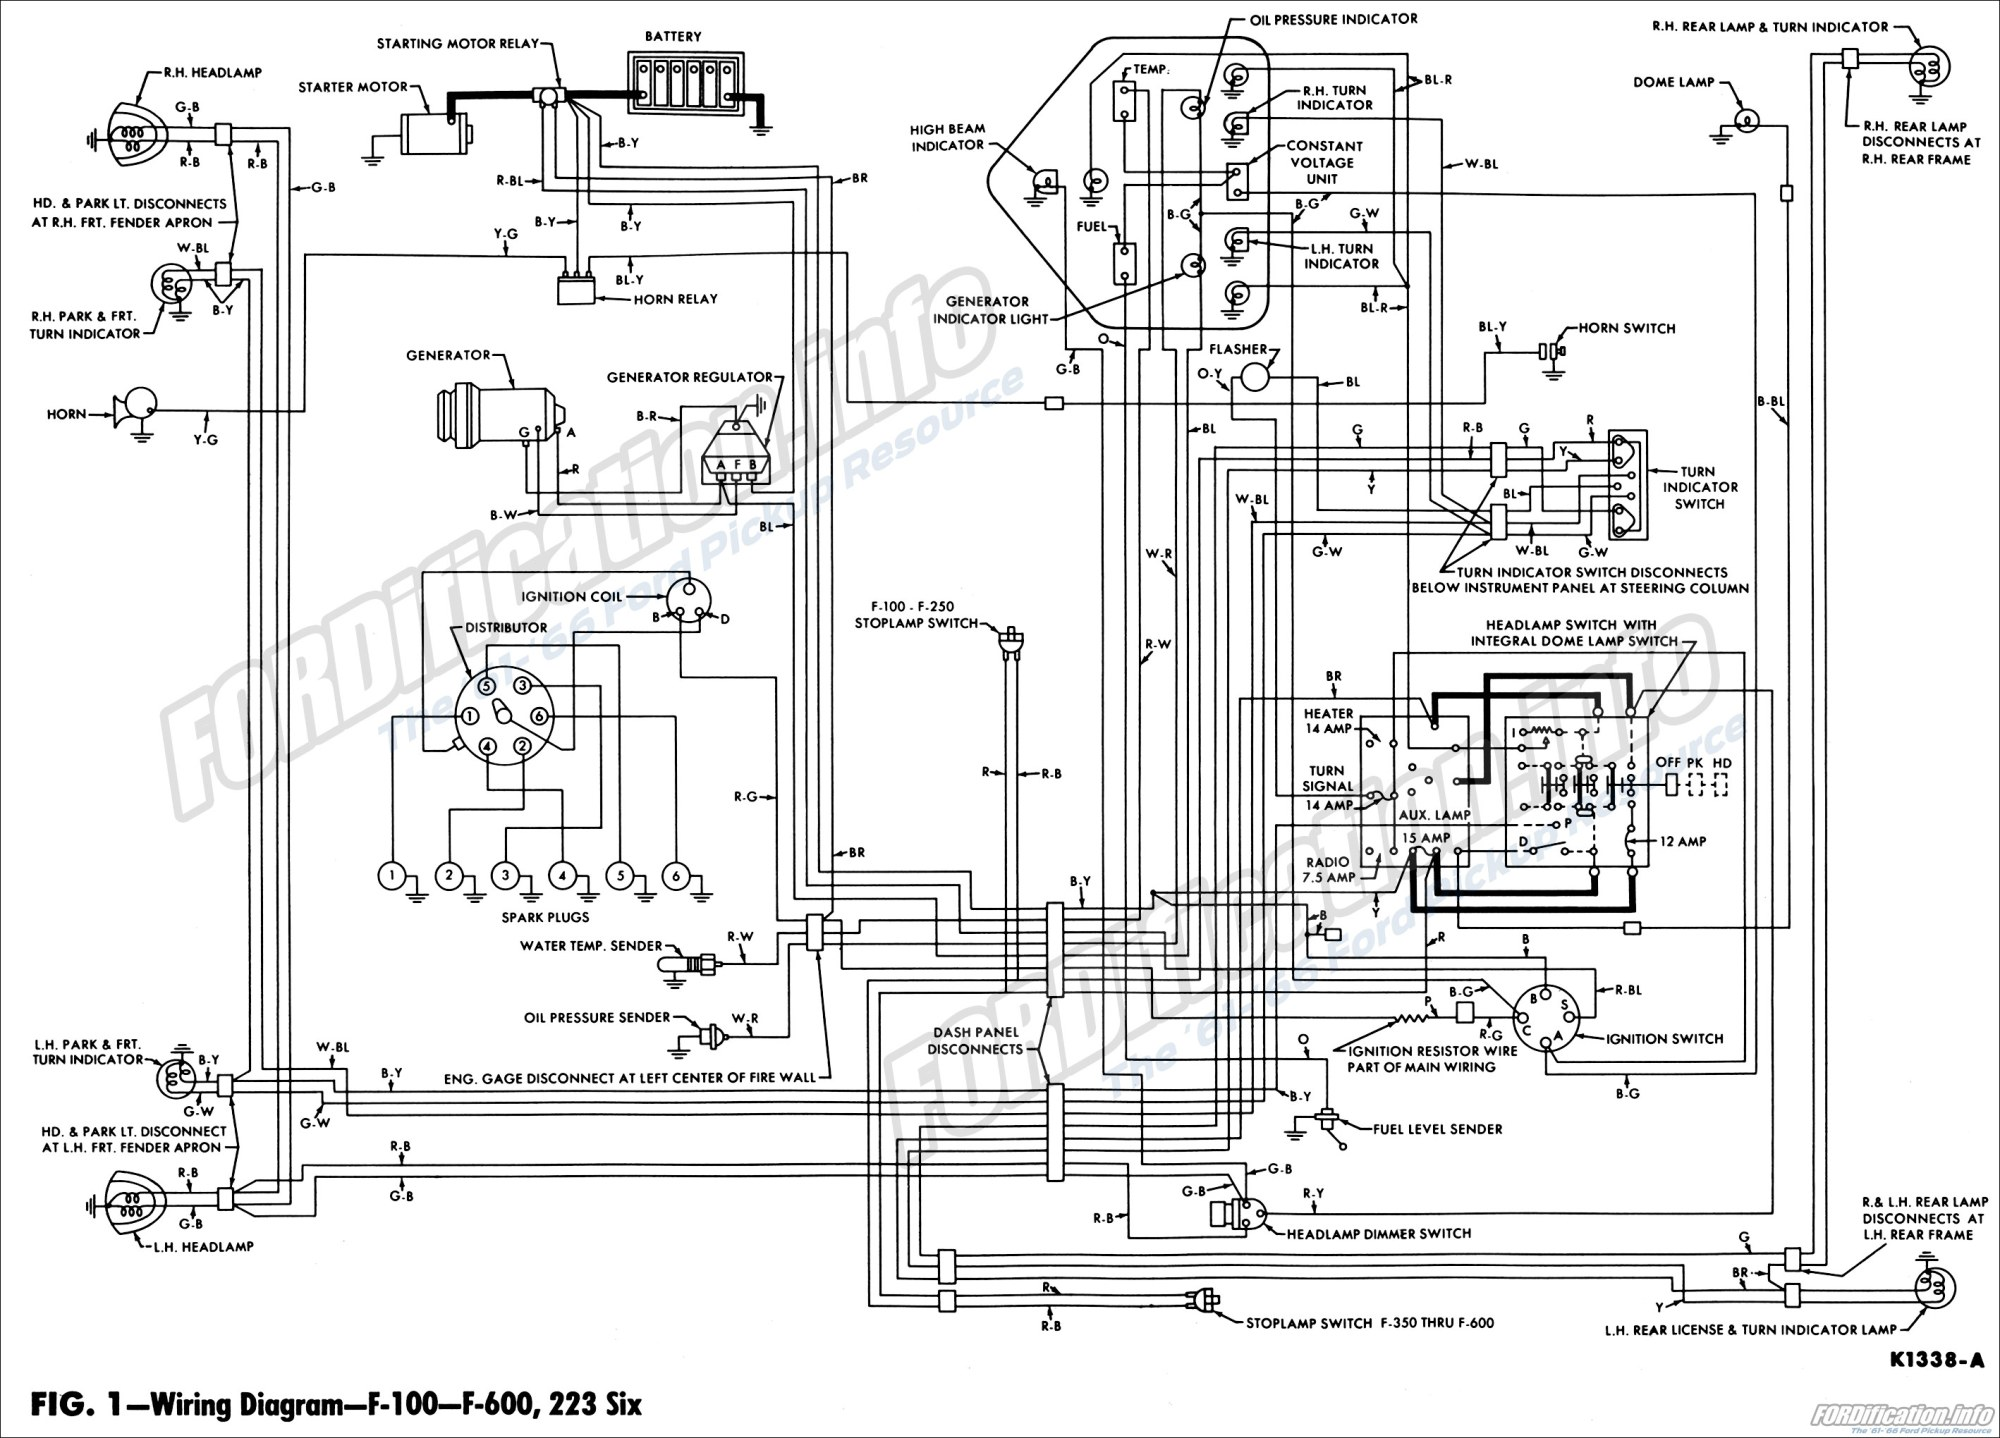 hight resolution of 62 ford generator wiring diagram wiring diagram local ford flathead generator wiring 62 ford generator wiring